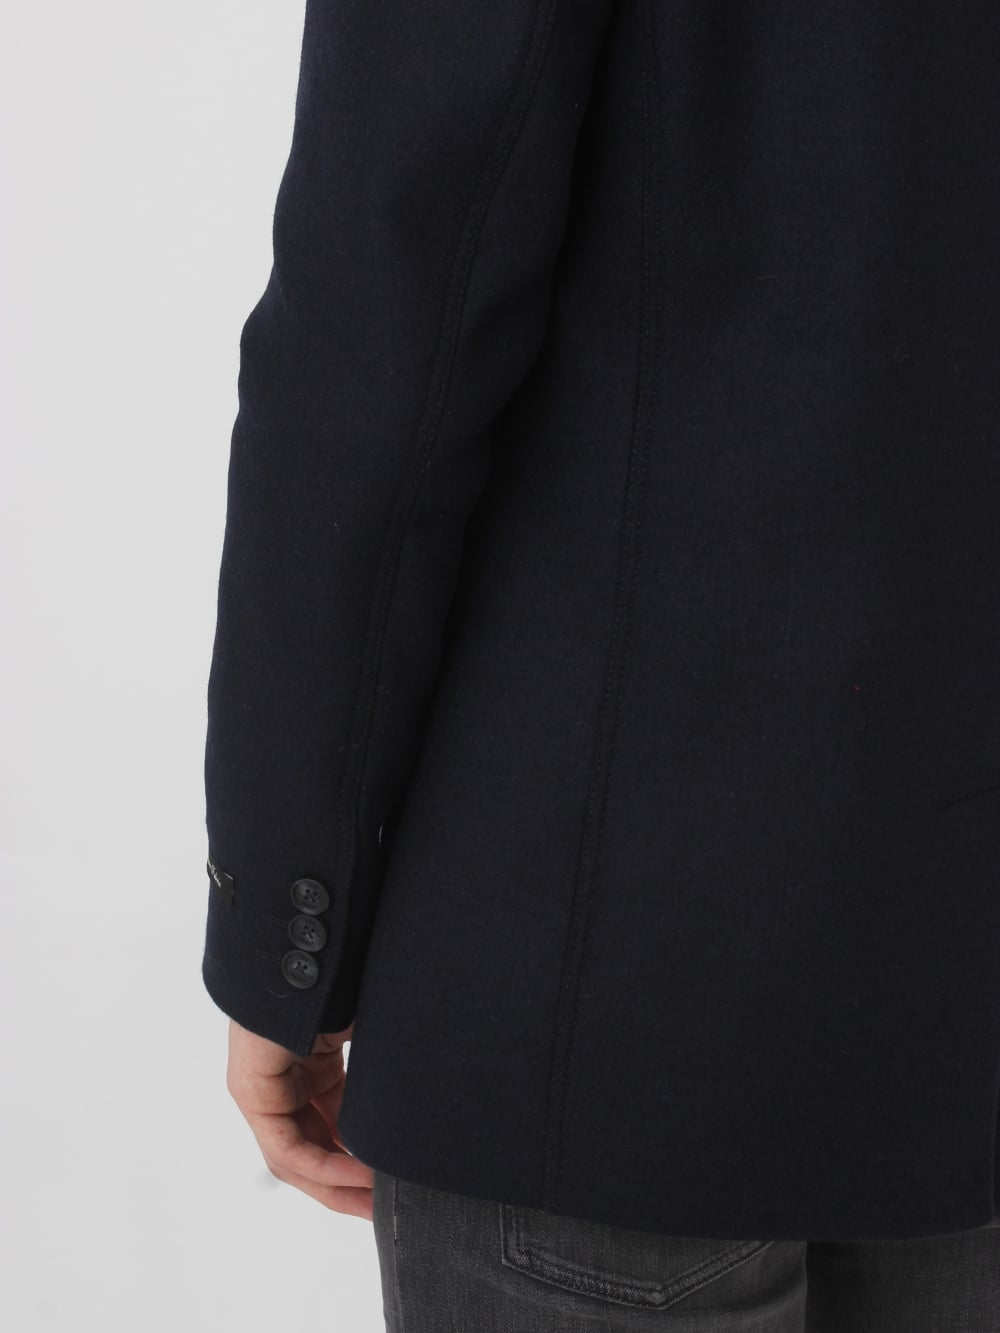 decd205febe0 Ted Baker Zachary Wool Peacoat in Navy - Northern Threads